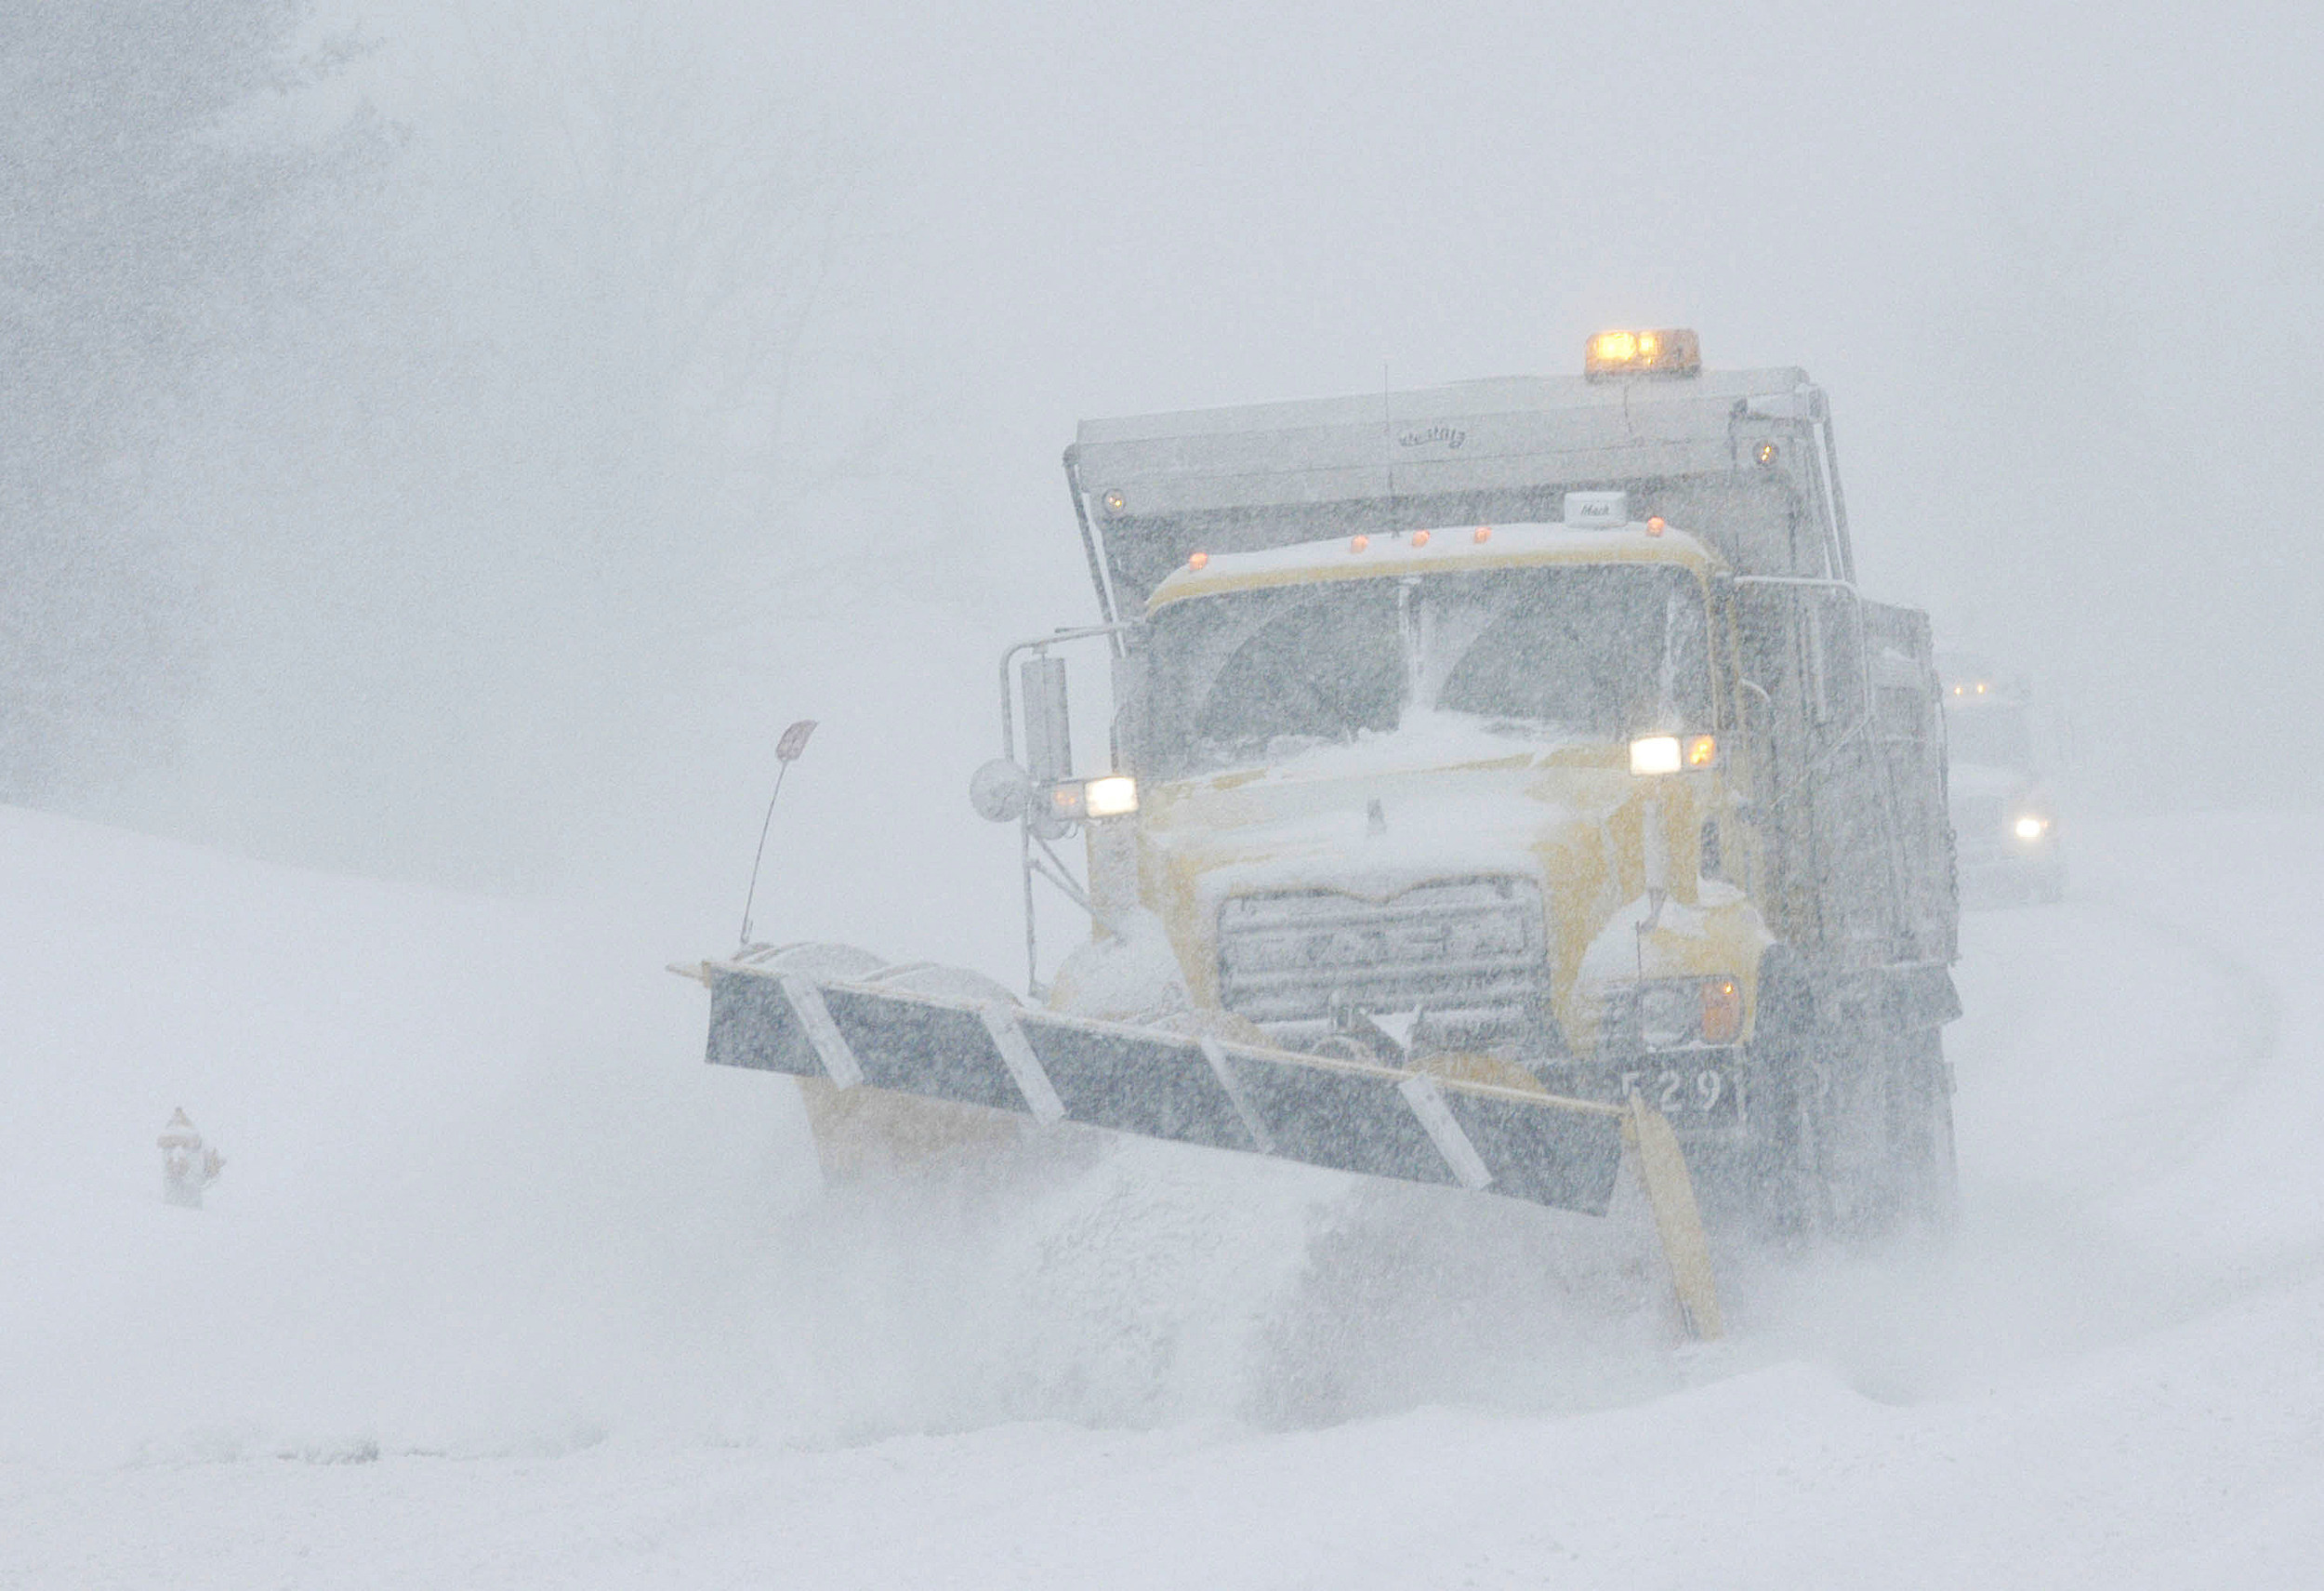 Weather Service Issues Warning on Weekend Snowstorm: 8-16 inches